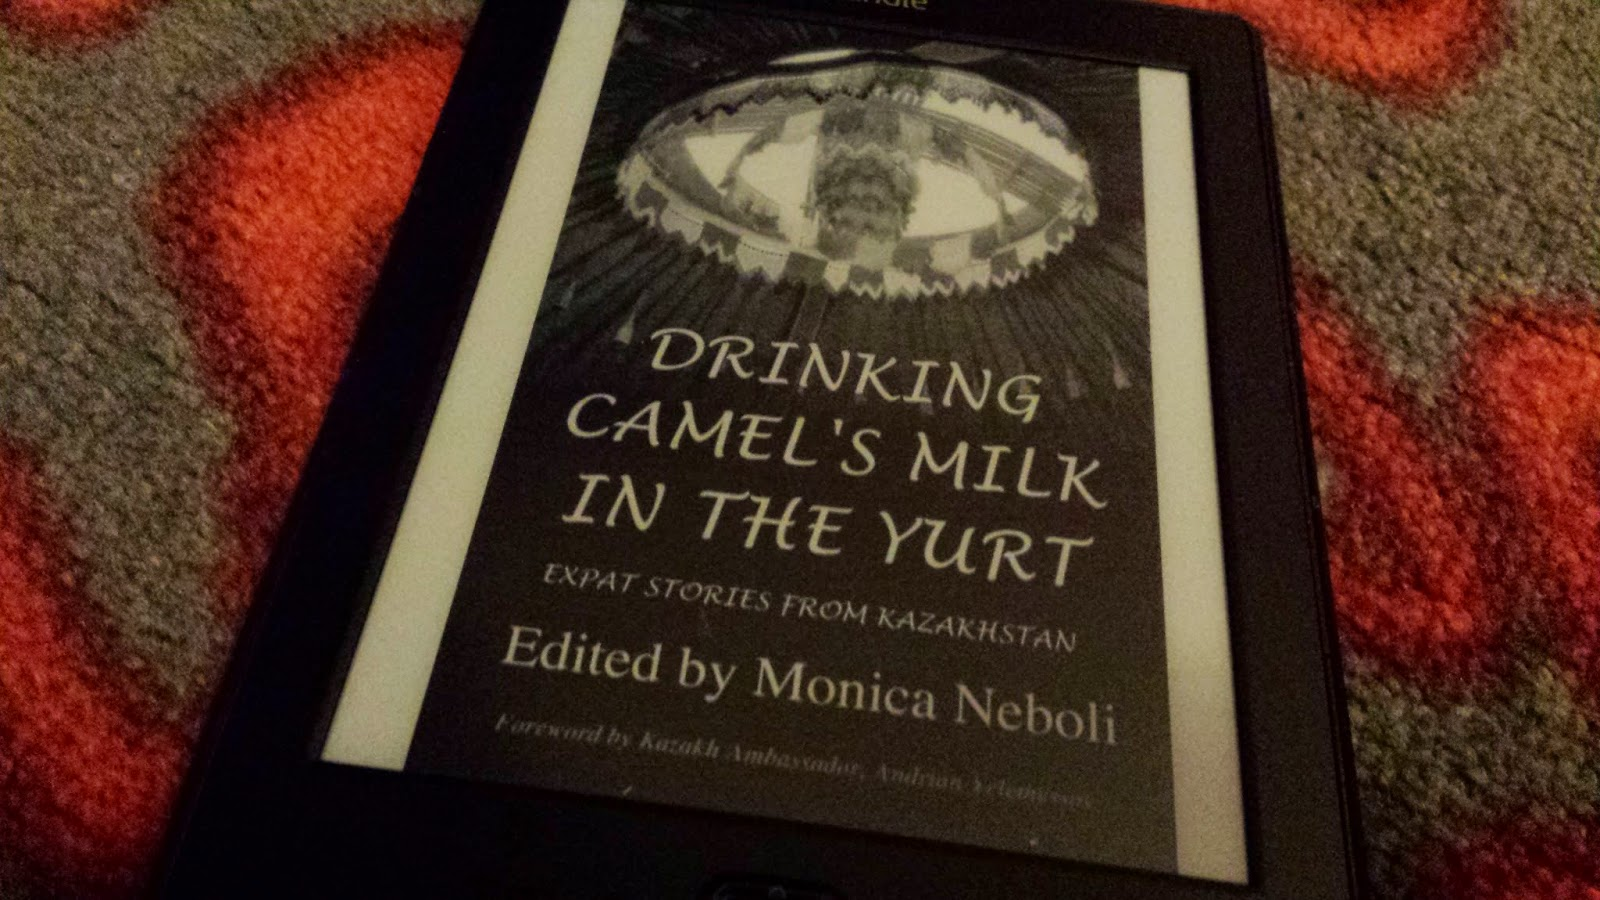 Drinking goat's milk in a yurt, Edited by Monica Neboli